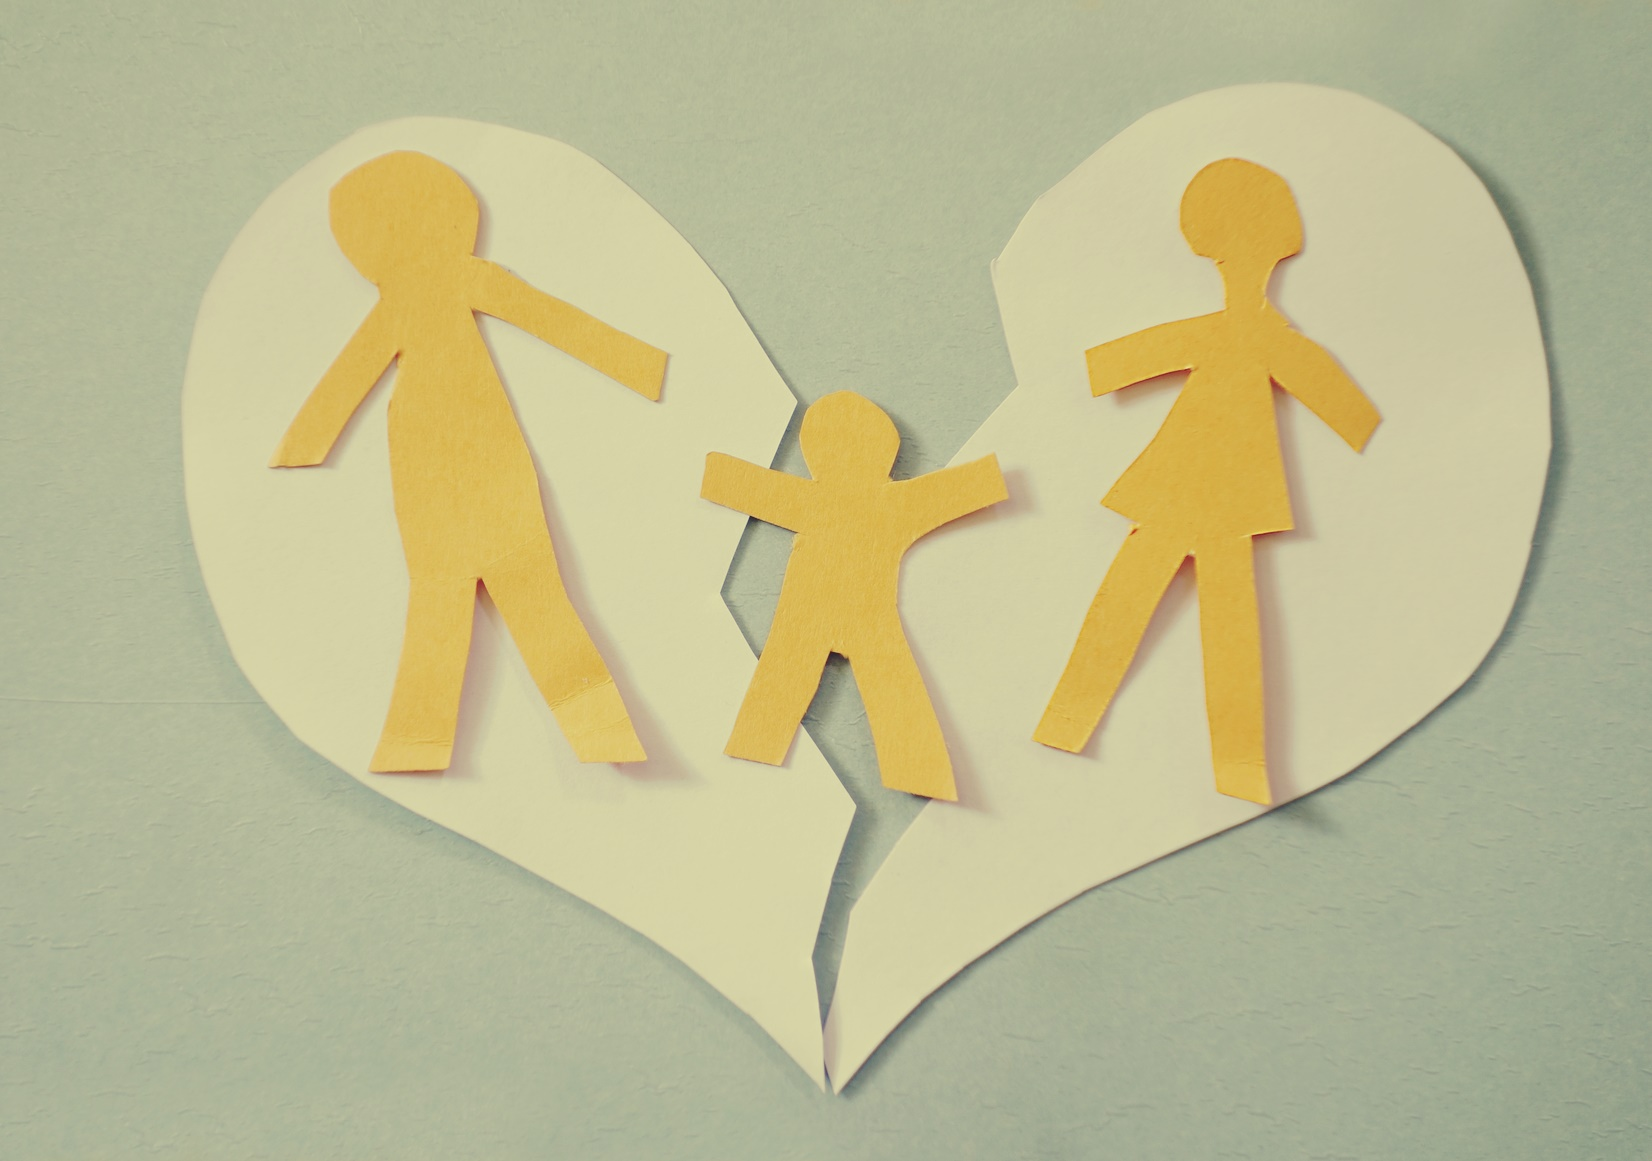 How soon is too soon to introduce a new partner to your kids?